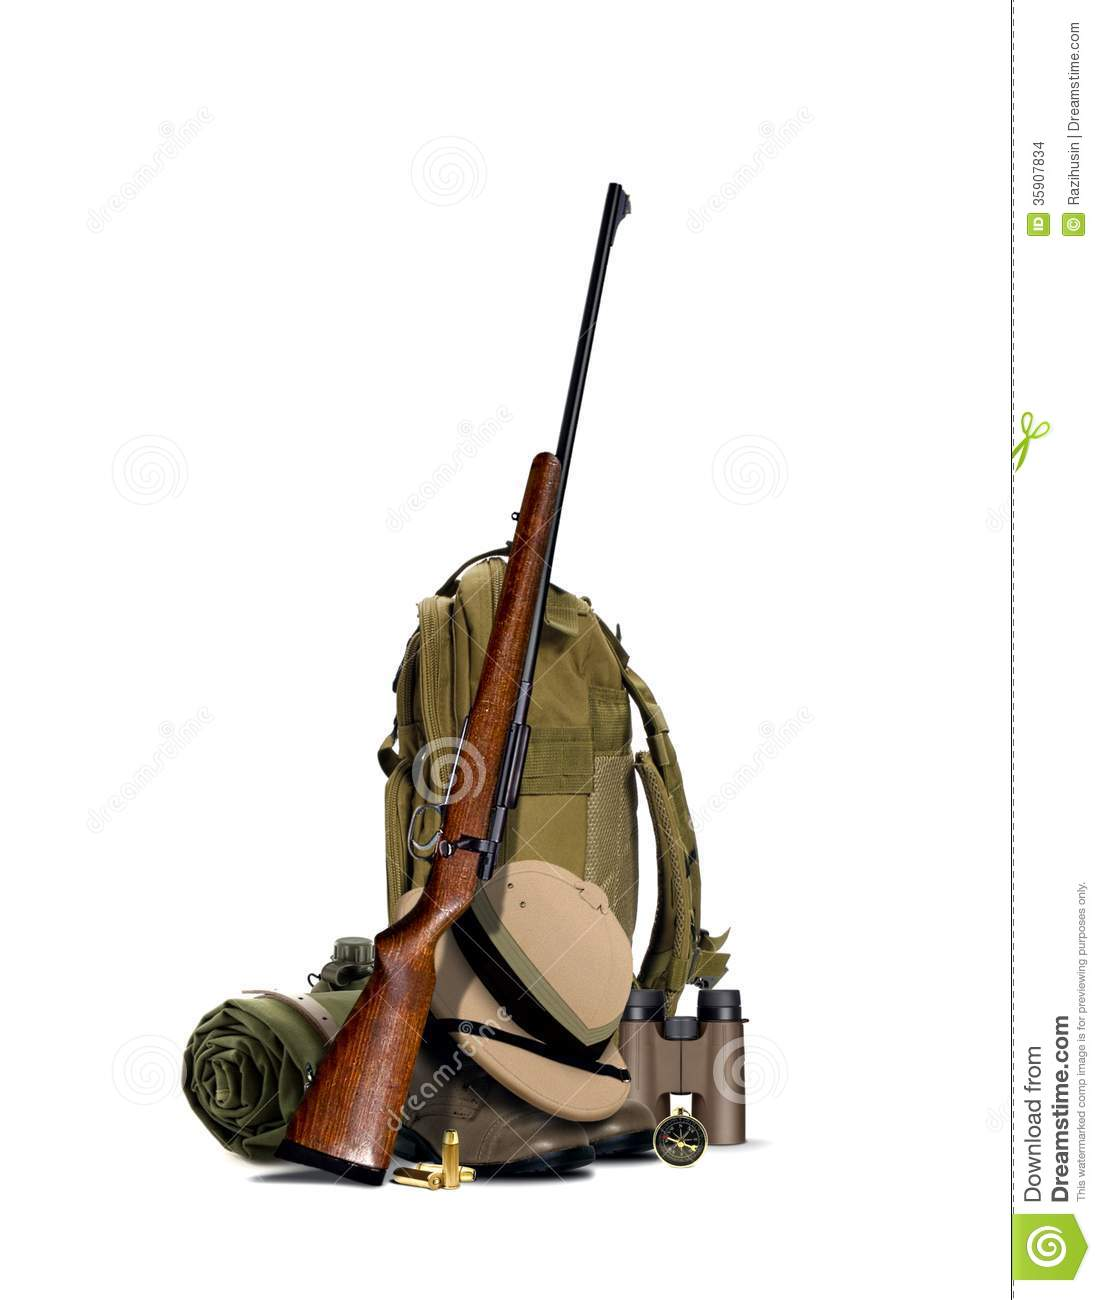 Hunting Equipment Stock Images - Image: 35907834